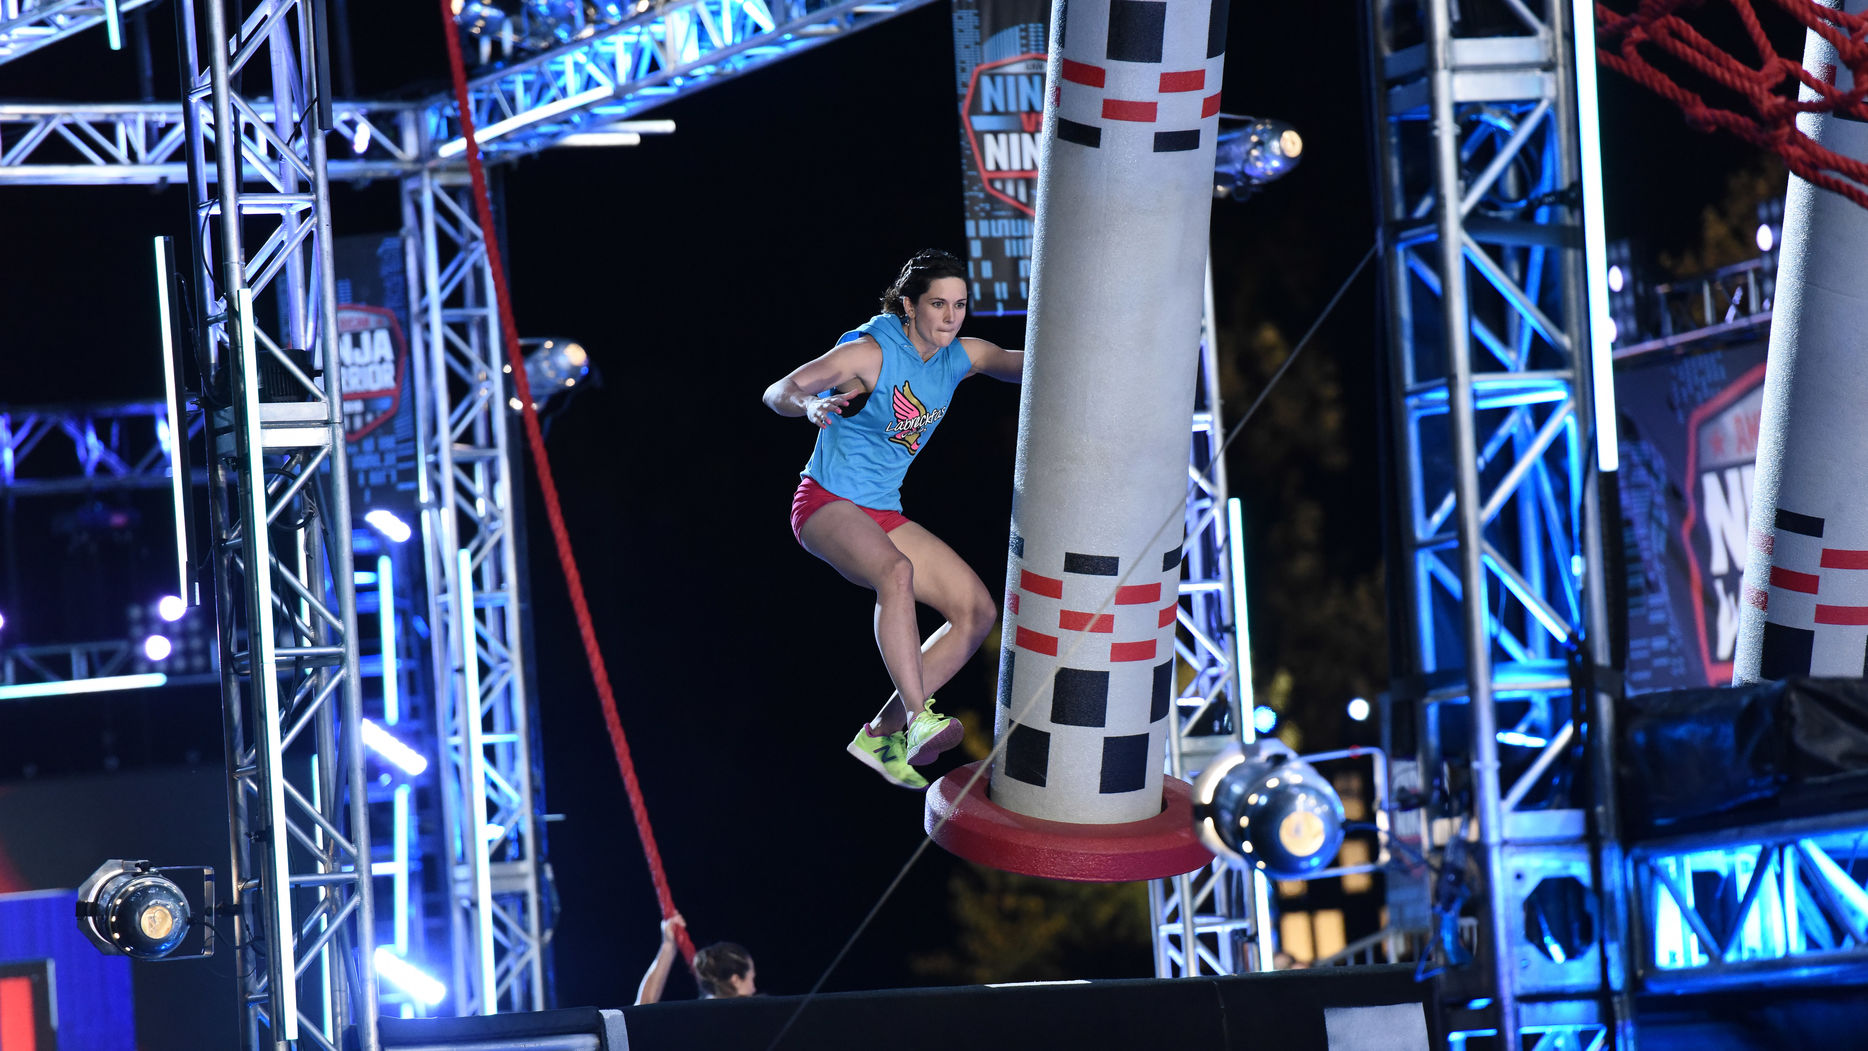 TV Recap: S01E02 – Ninja vs Ninja American Ninja Warrior Qualifying Week 2